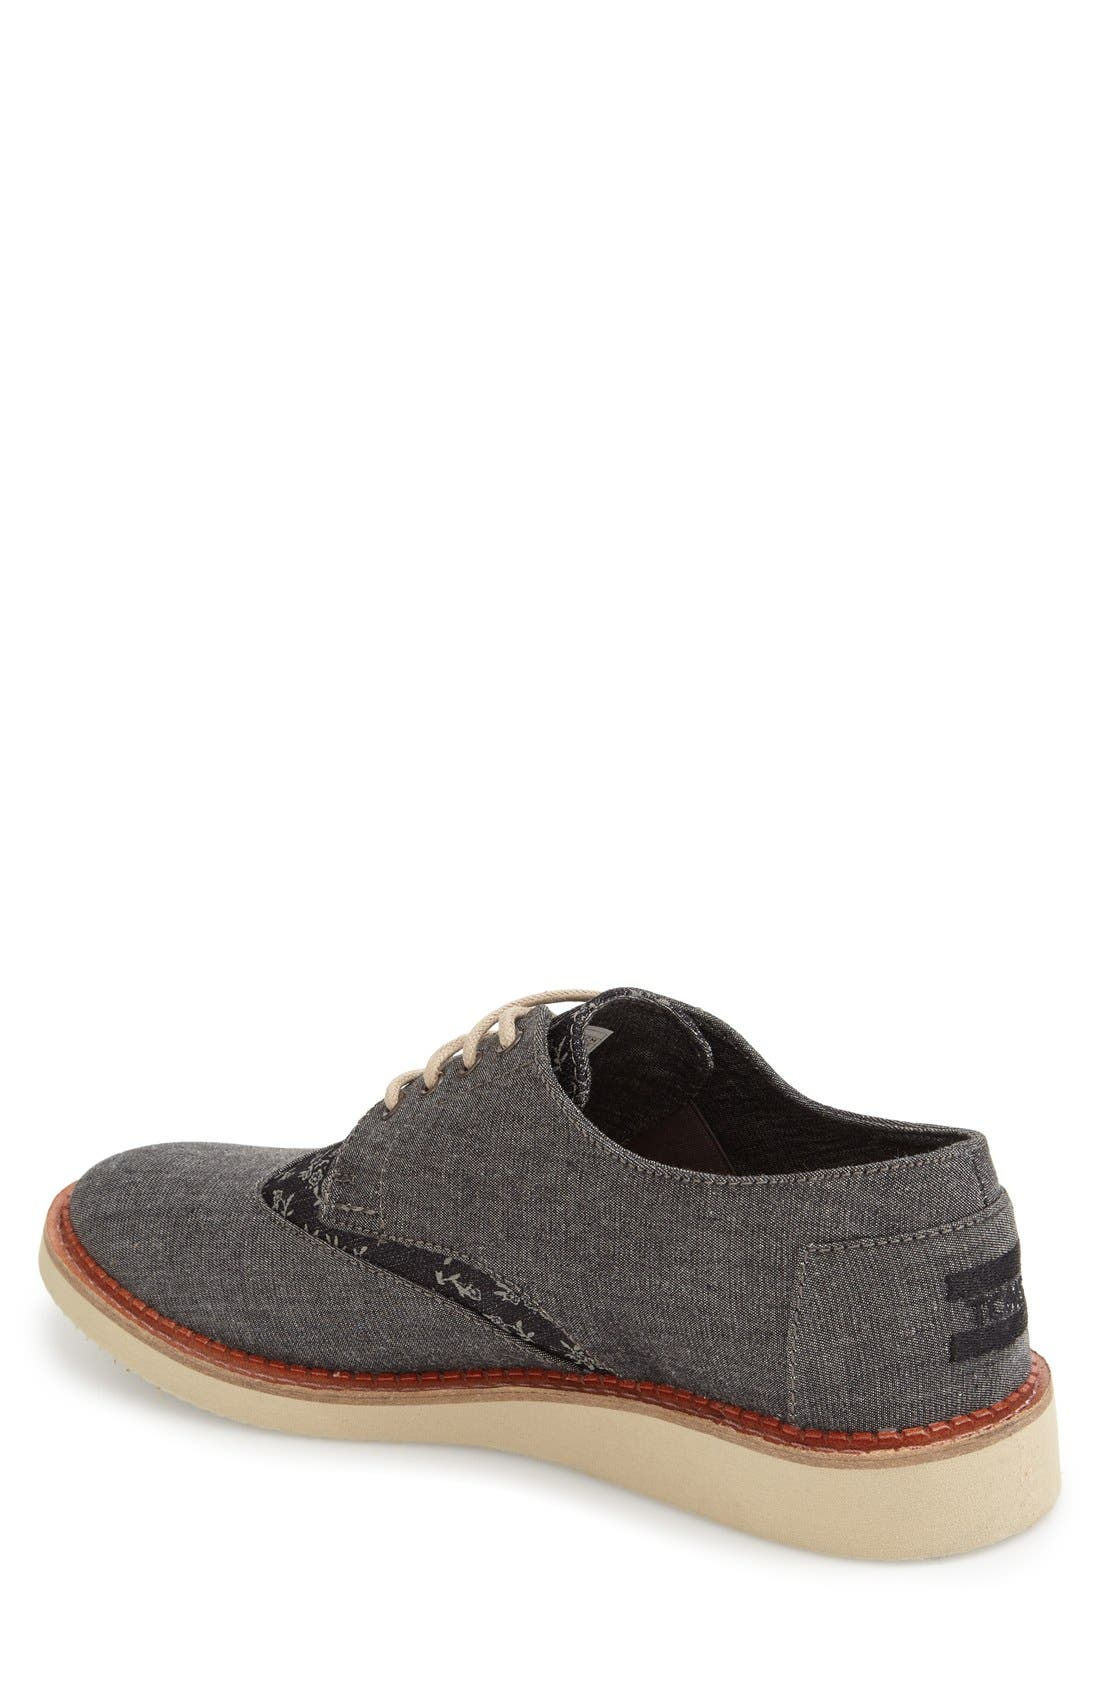 'Classic Brogue' Cotton Twill Derby,                             Alternate thumbnail 19, color,